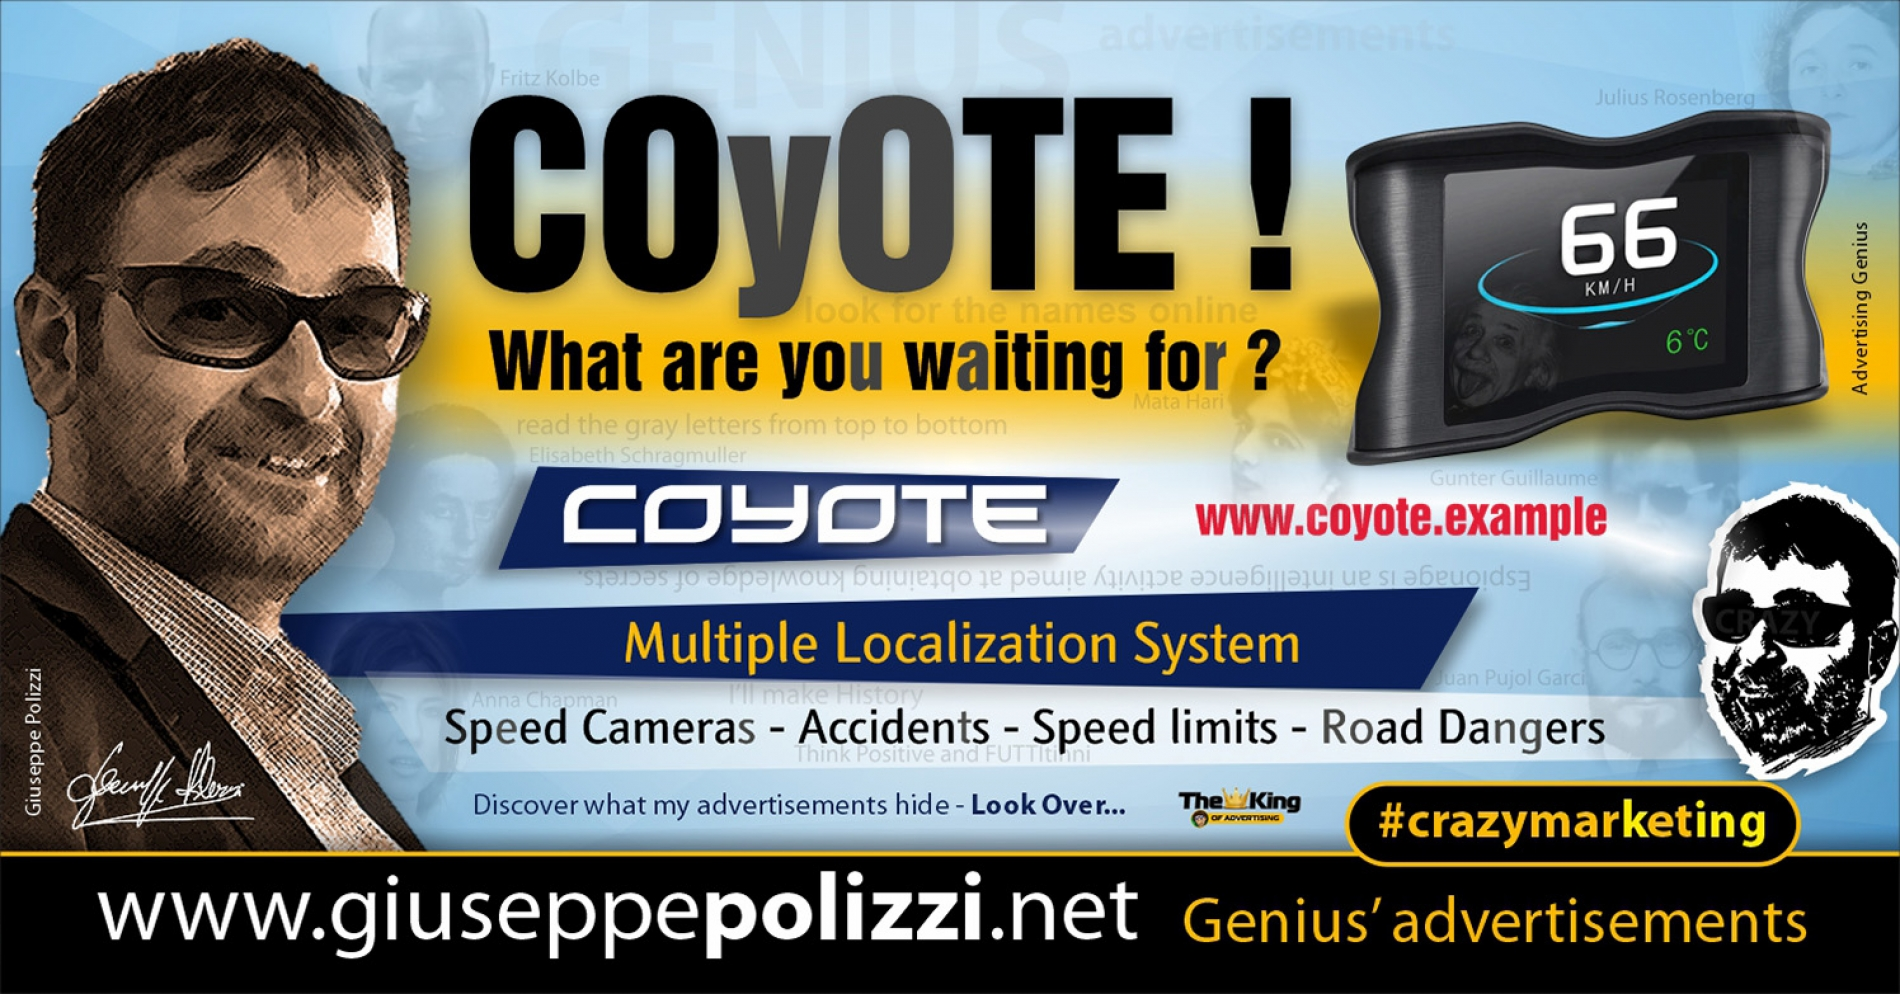 Giuseppe Polizzi Crazymarketing COYOTE advertisements